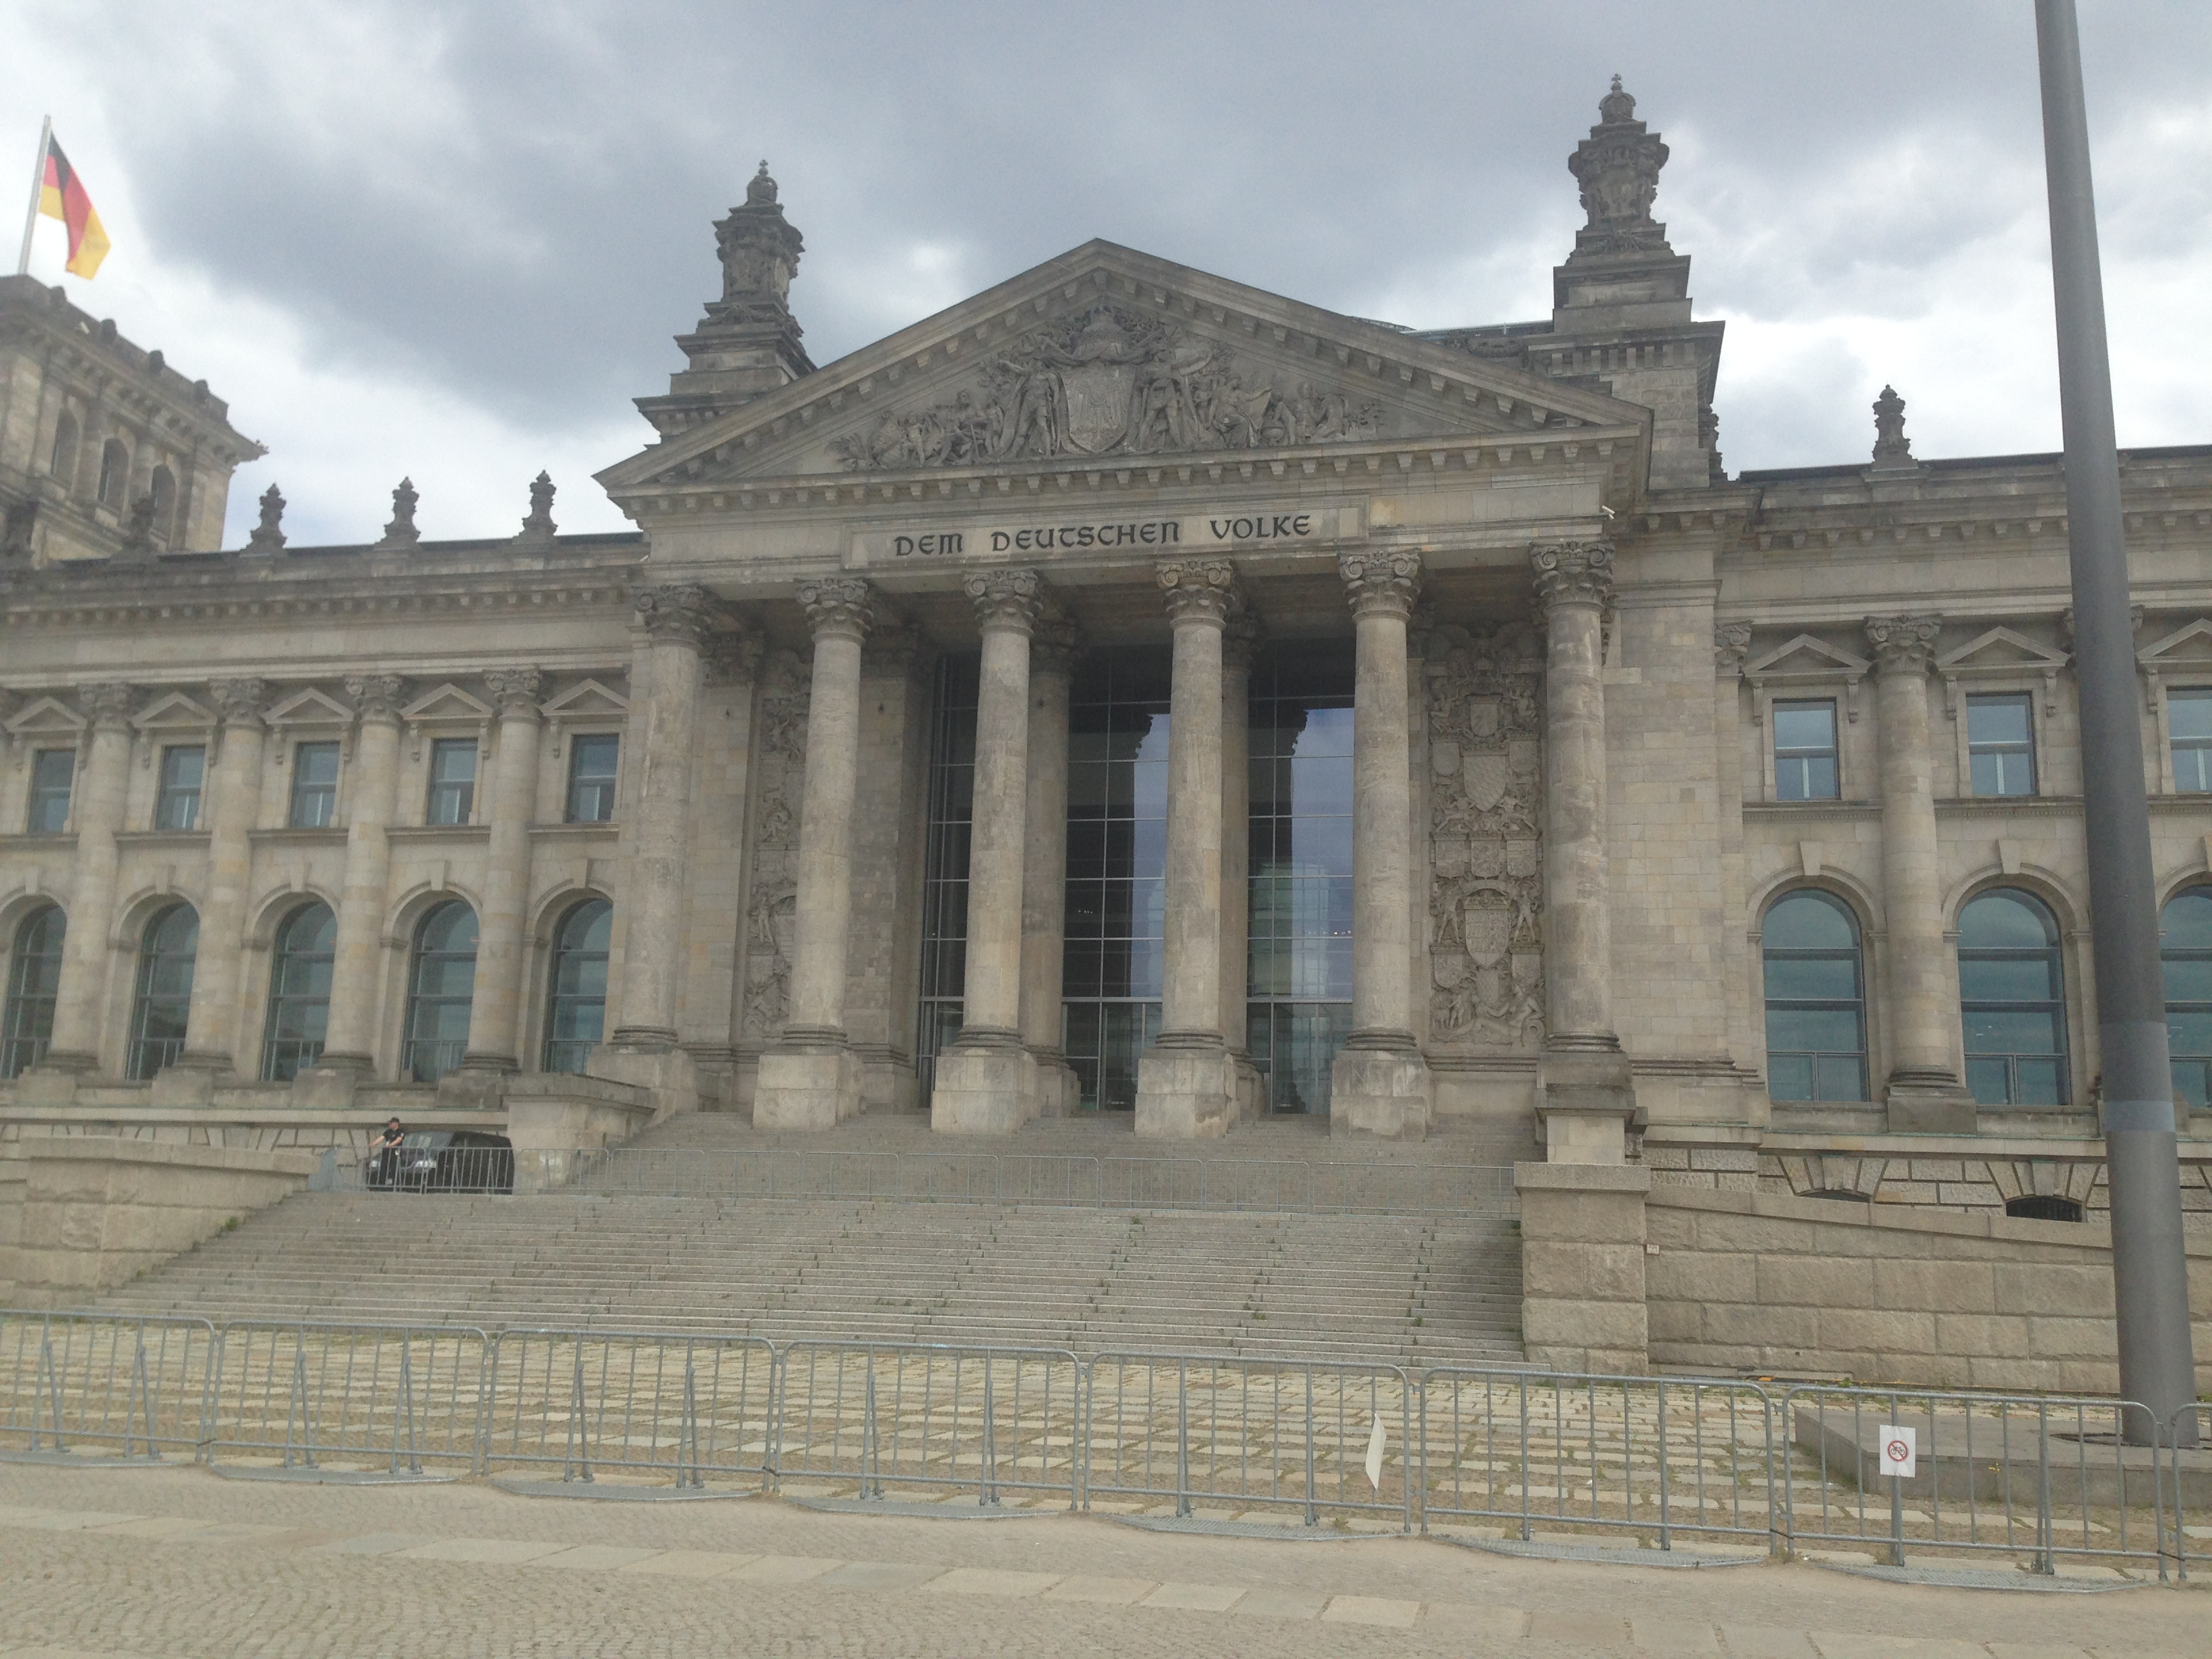 Bundestag (German Parliament)